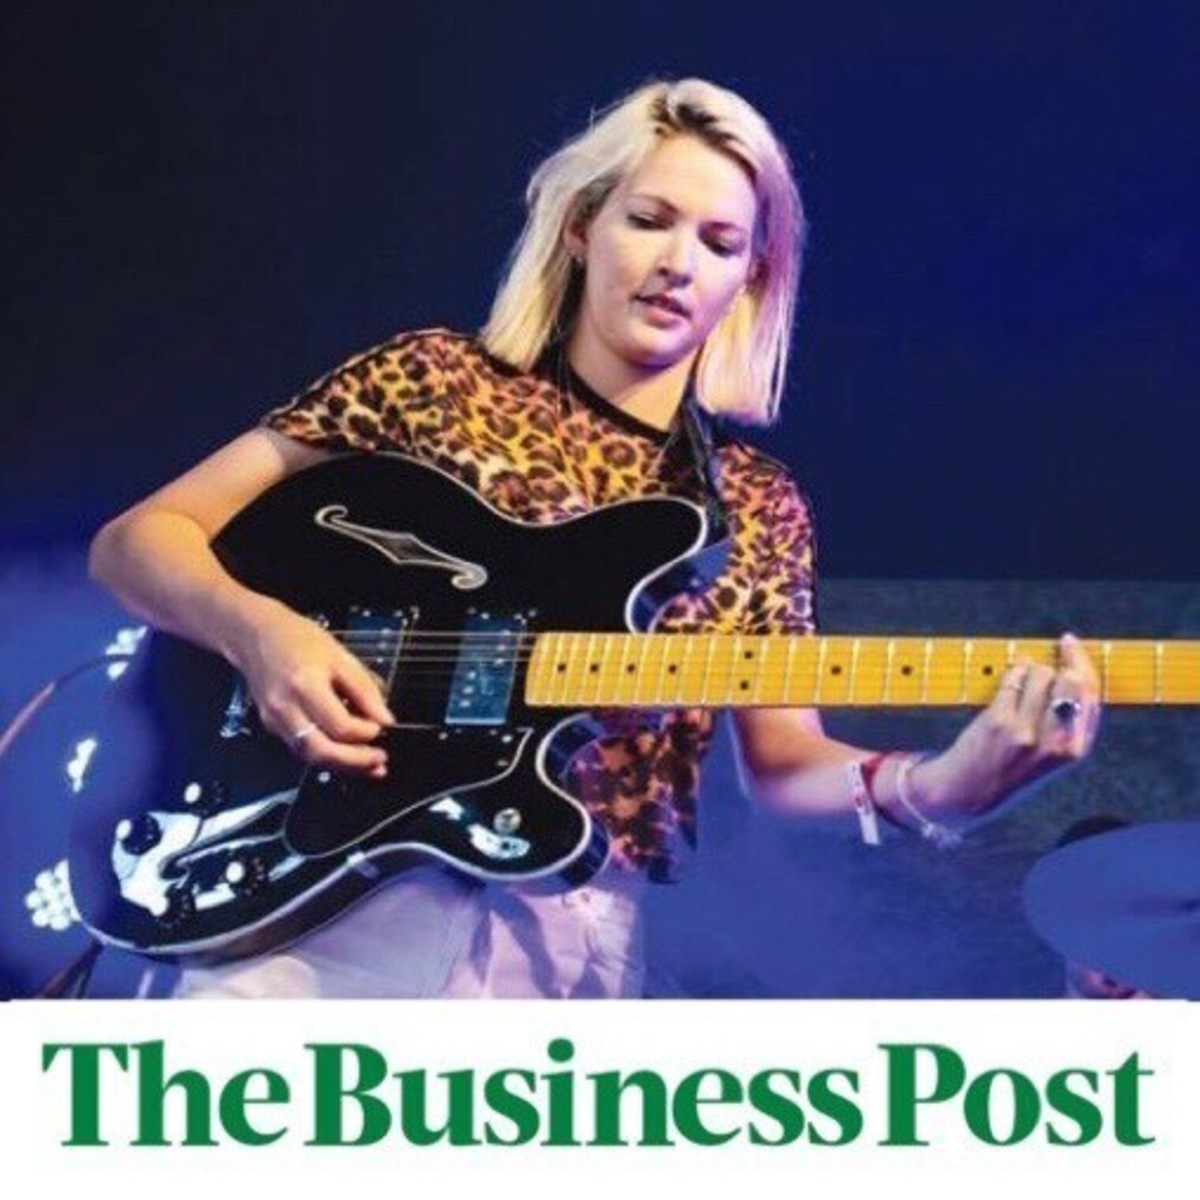 Articlehome ailbhe press the business post